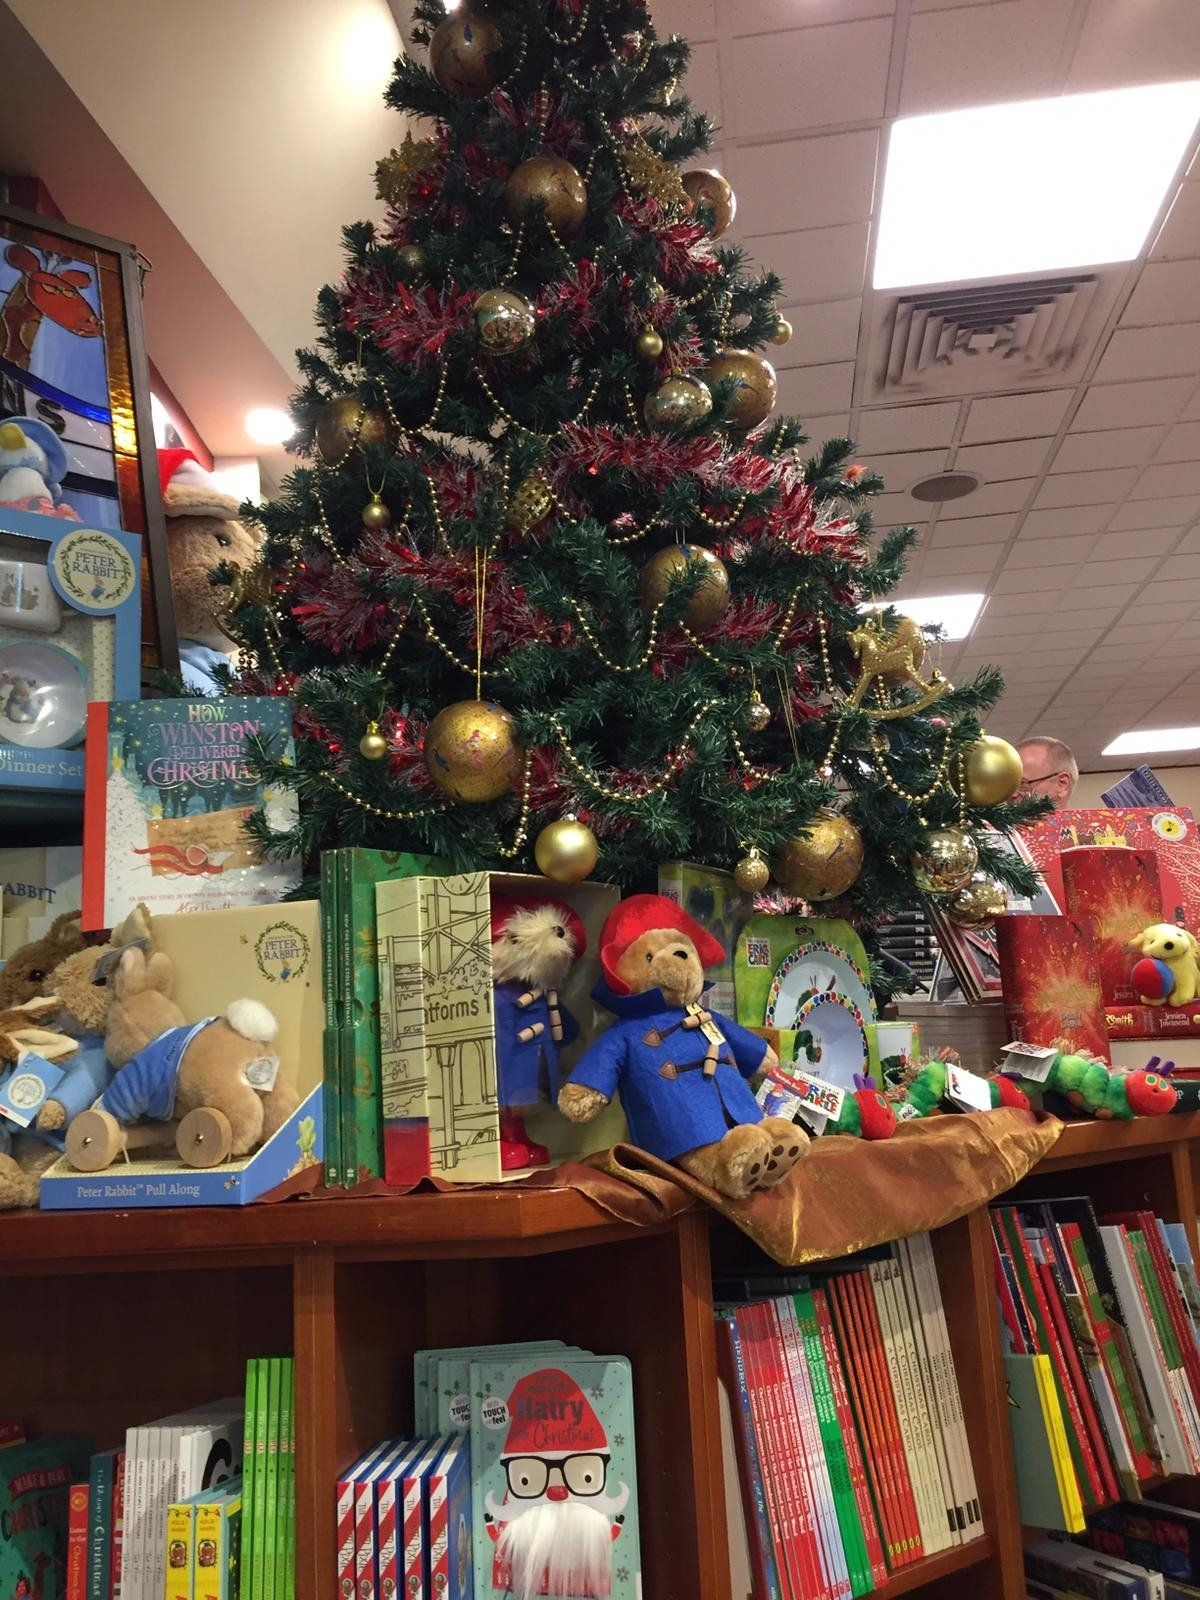 Christmas Tree at Bookstore